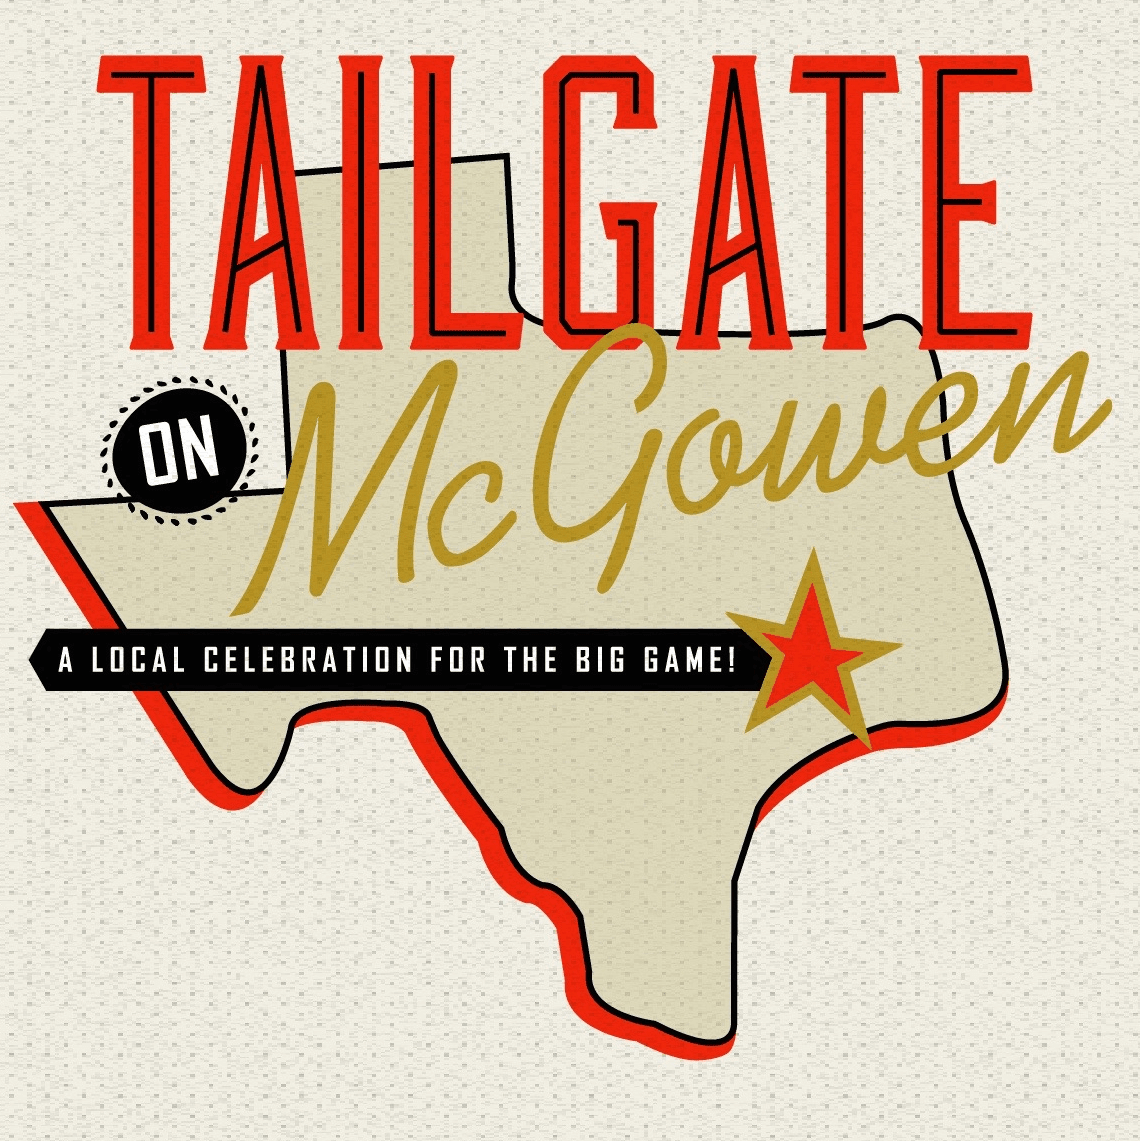 Tailgate on McGowen Super Bowl party logo